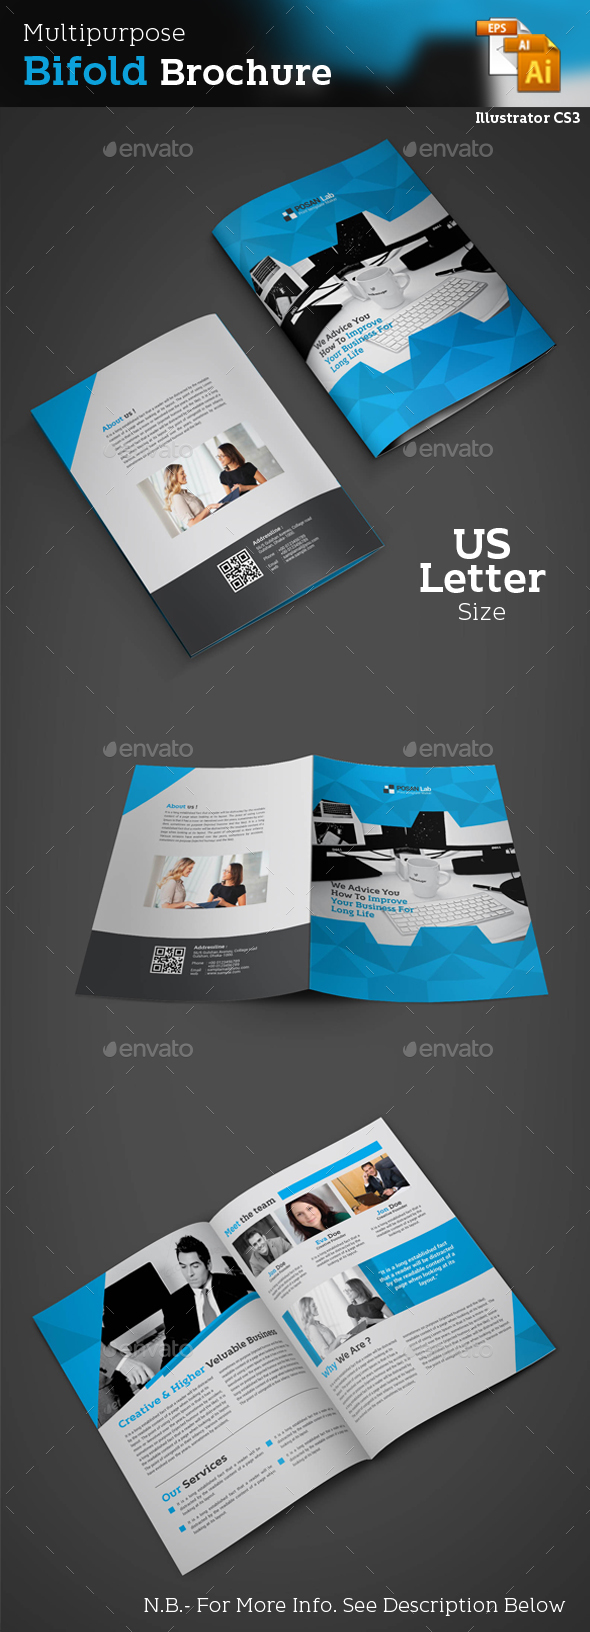 Business Bifold Brochure - Brochures Print Templates